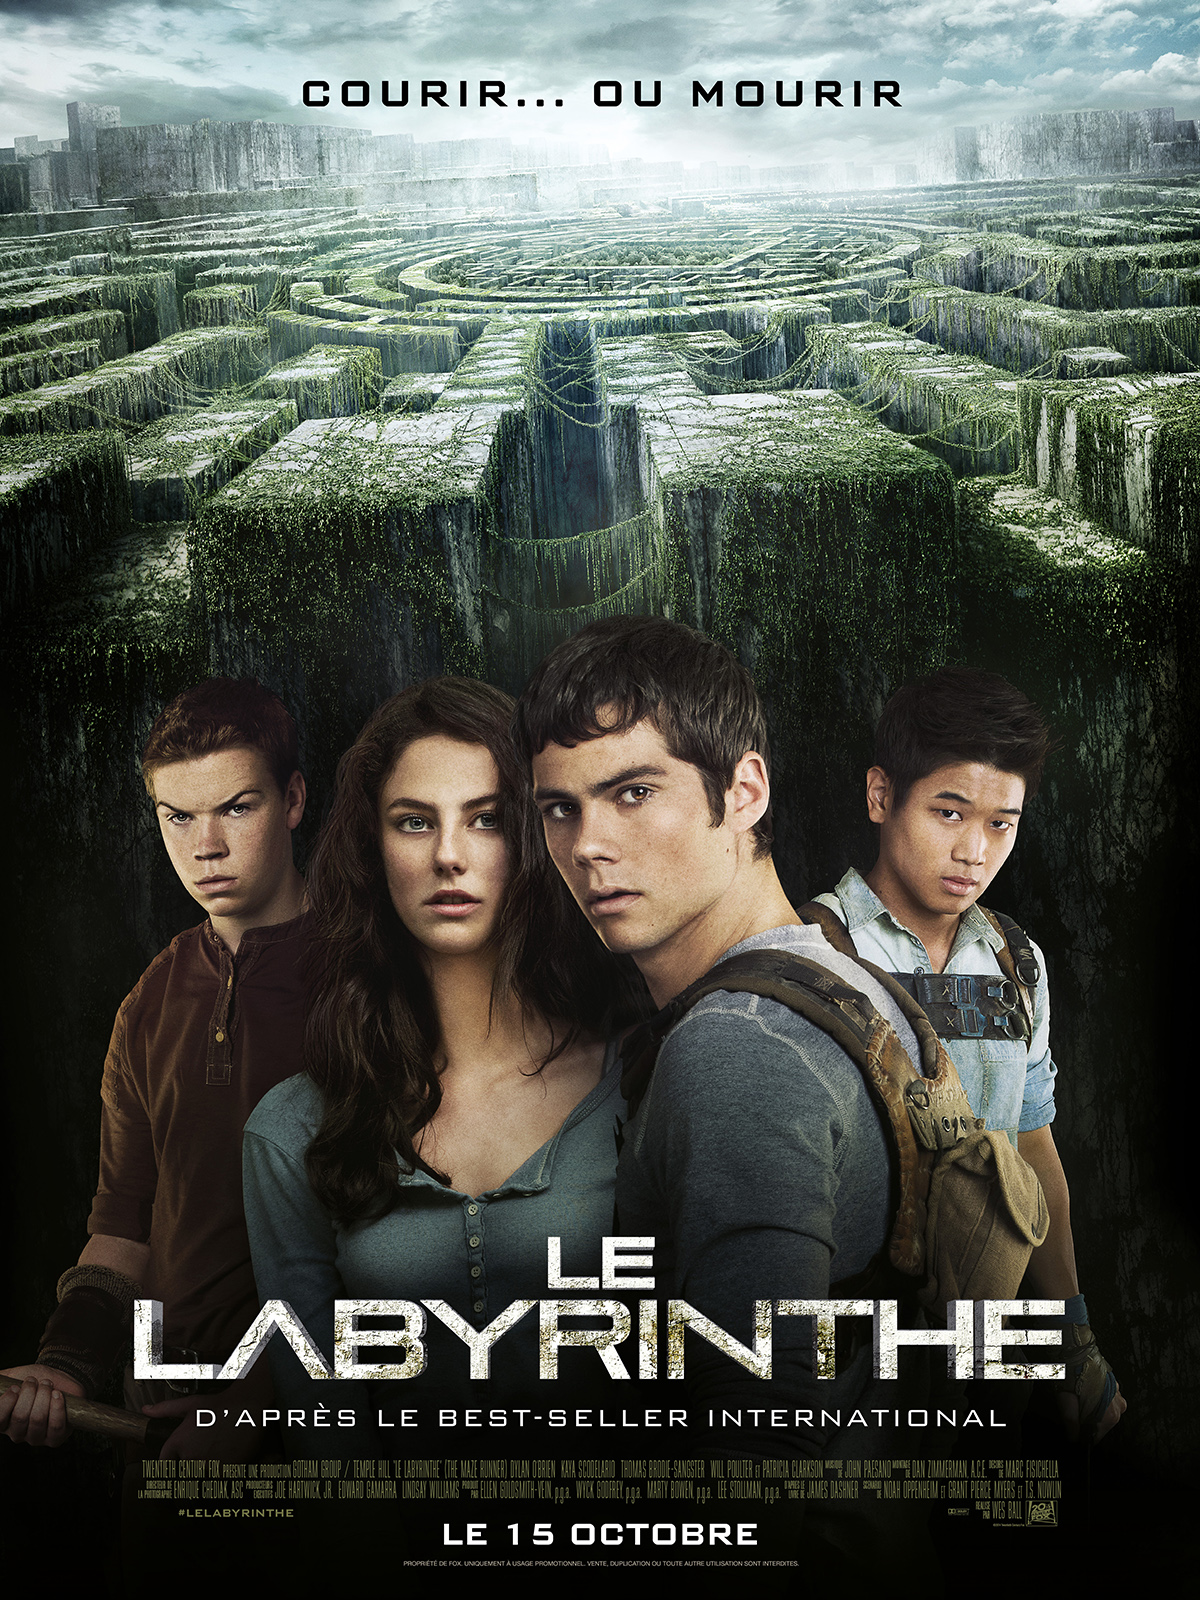 Telecharger Le Labyrinthe TRUEFRENCH BDRIP Gratuitement